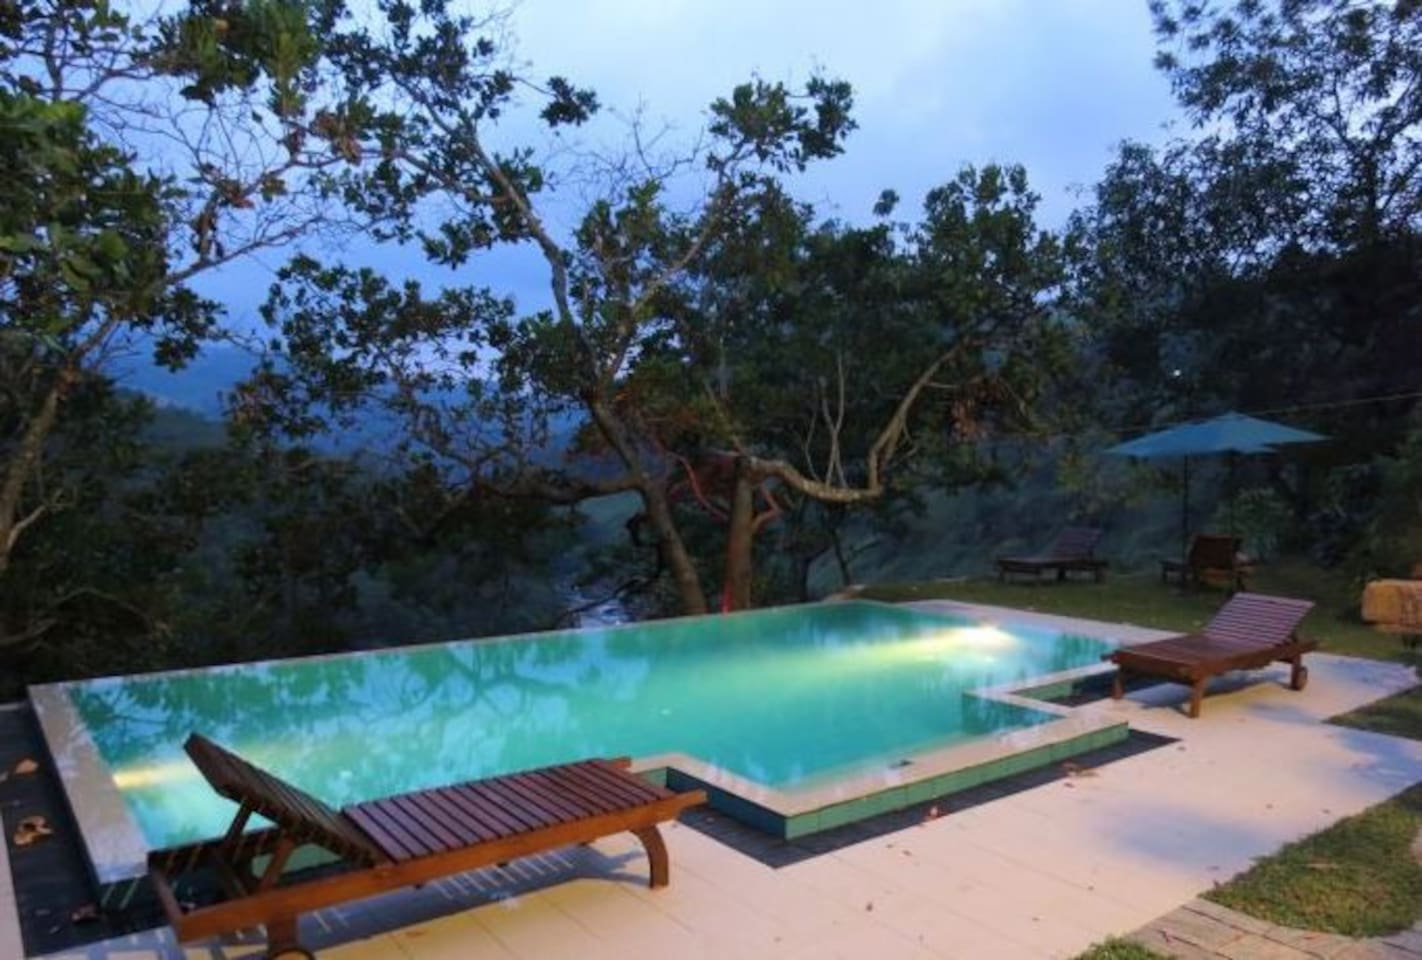 Pool area during dusk